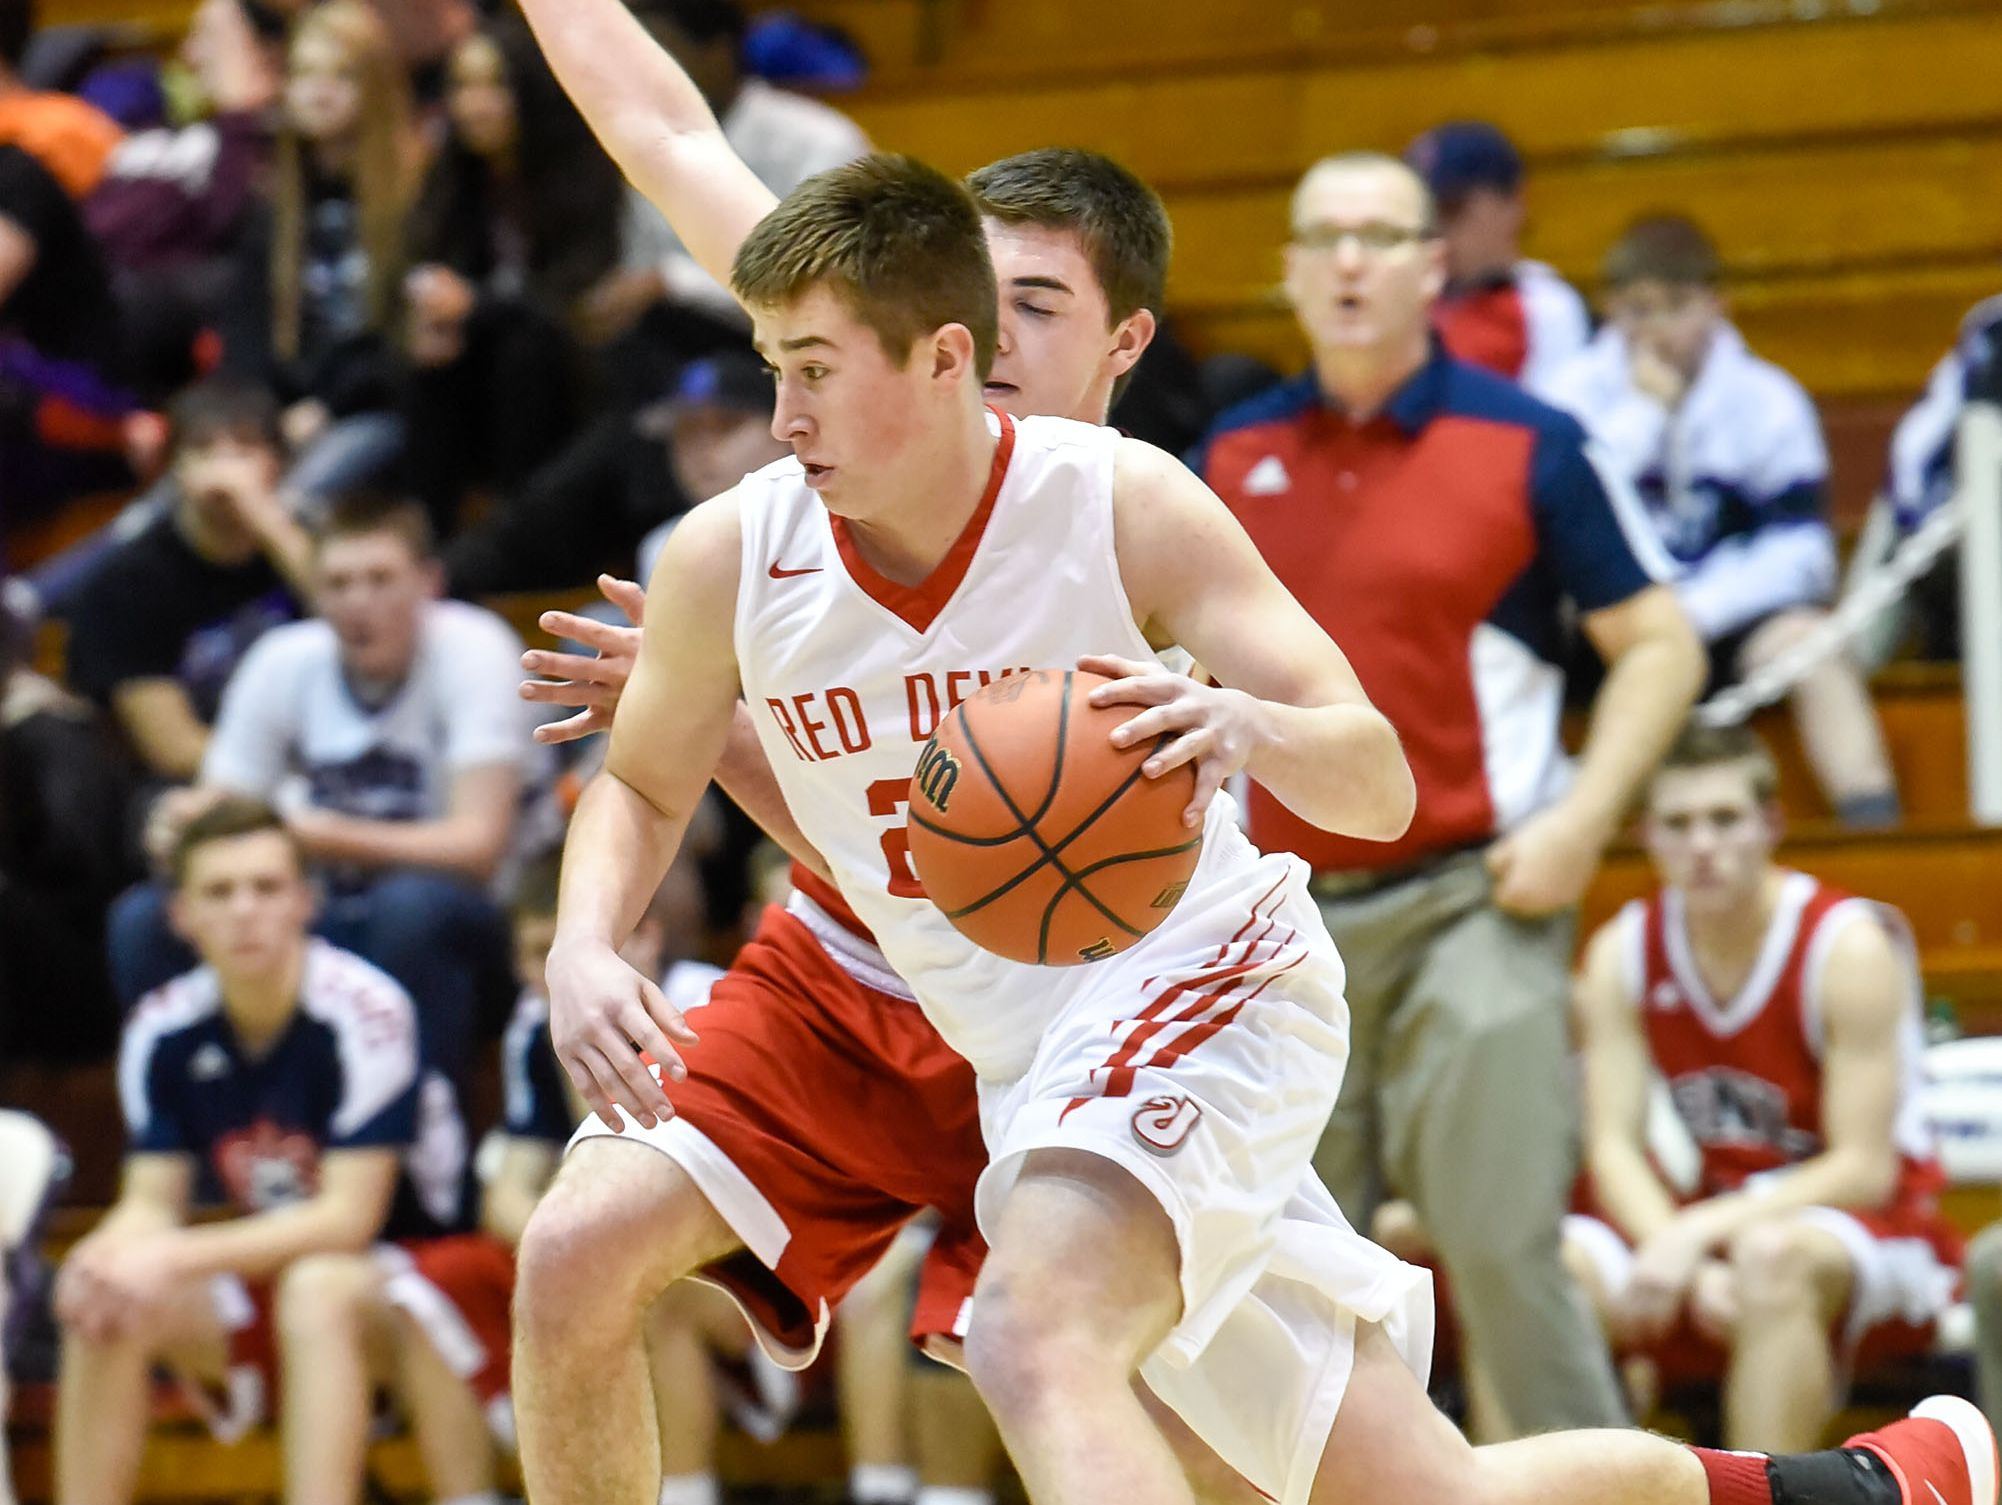 Bedford North Lawrence Braxton Day (24) blocks Jeffersonville Red Devils Bailey Falkenstein (24) during first half of play in the 106th Annual IHSAA Boys Basketball State Tournament Class 4A sectional game at Seymour High School in Seymour, Ind. Mar. 1, 2016